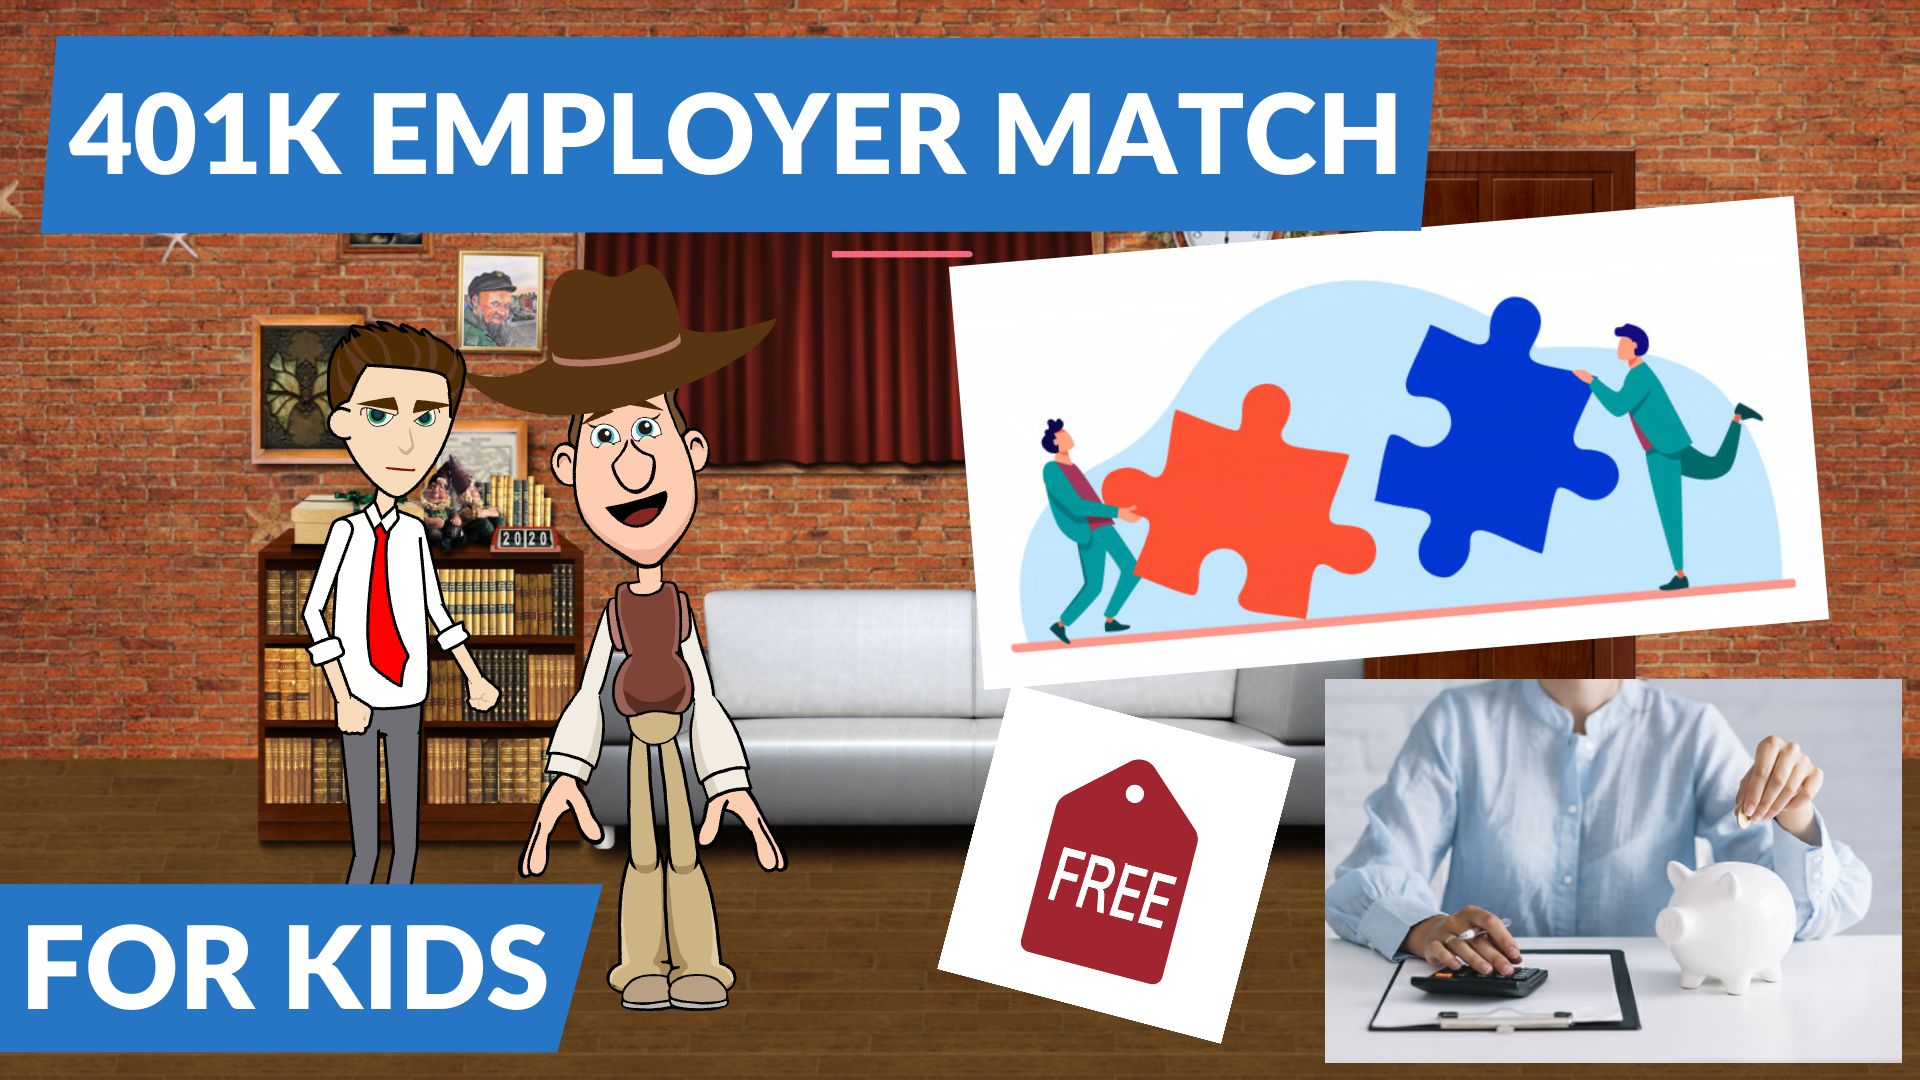 401k - Employer Match